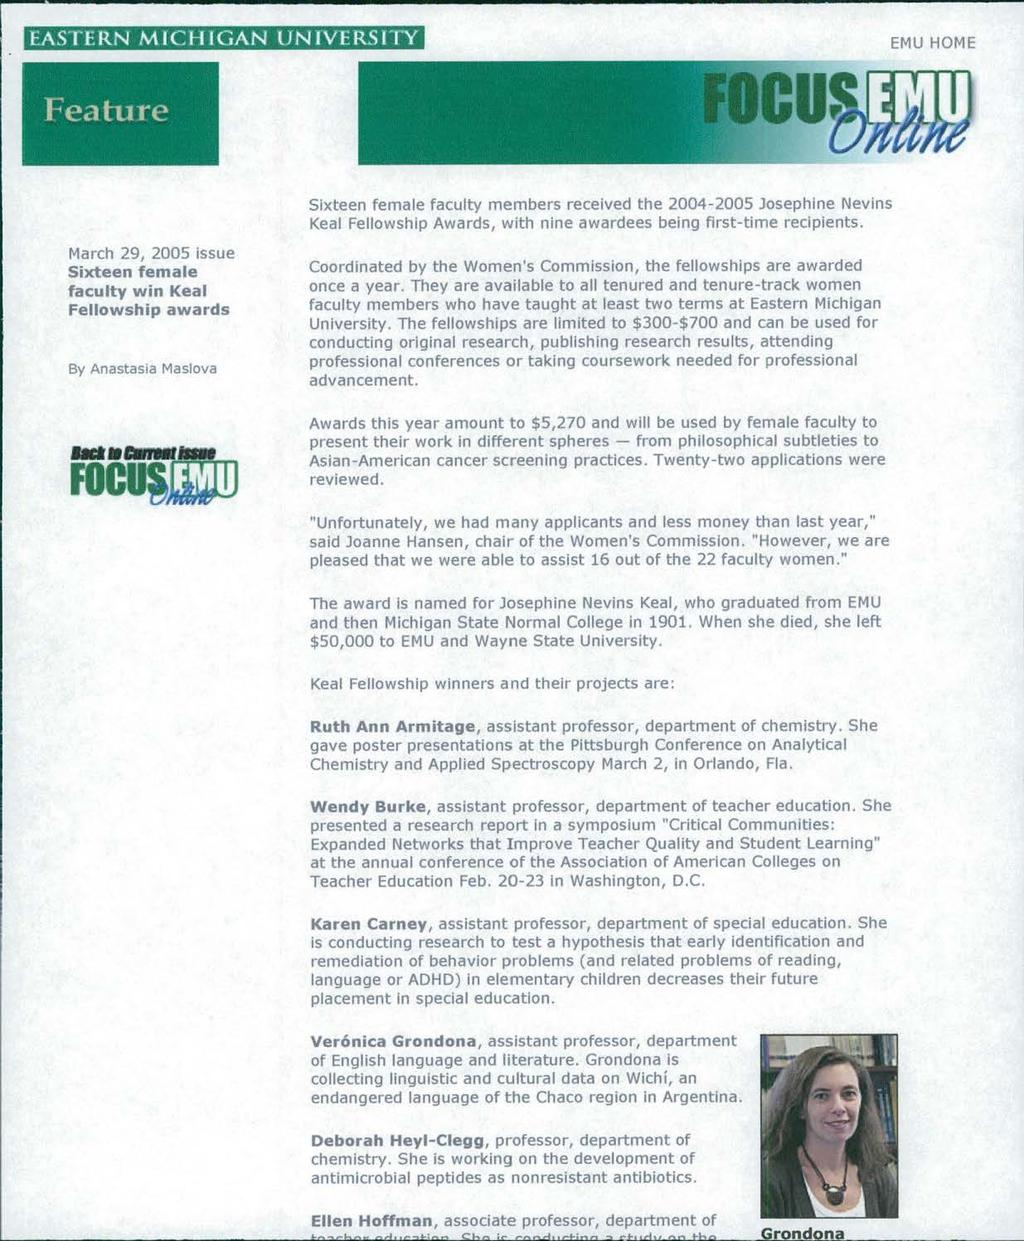 "Ellen Hoffman, associate professor, department of ~ ~ ~ ~ ~ ~ -l:.t:>..::u::.b..c""'--""..d..ul.c..:>.ti '.<>.e... Grondona EASTERN MICHIGAN UNIVERSITY Feature Sixteen female faculty members received the 2004-2005 Josephine Nevins Keal Fellowship Awards, with nine awardees being first-time recipients."